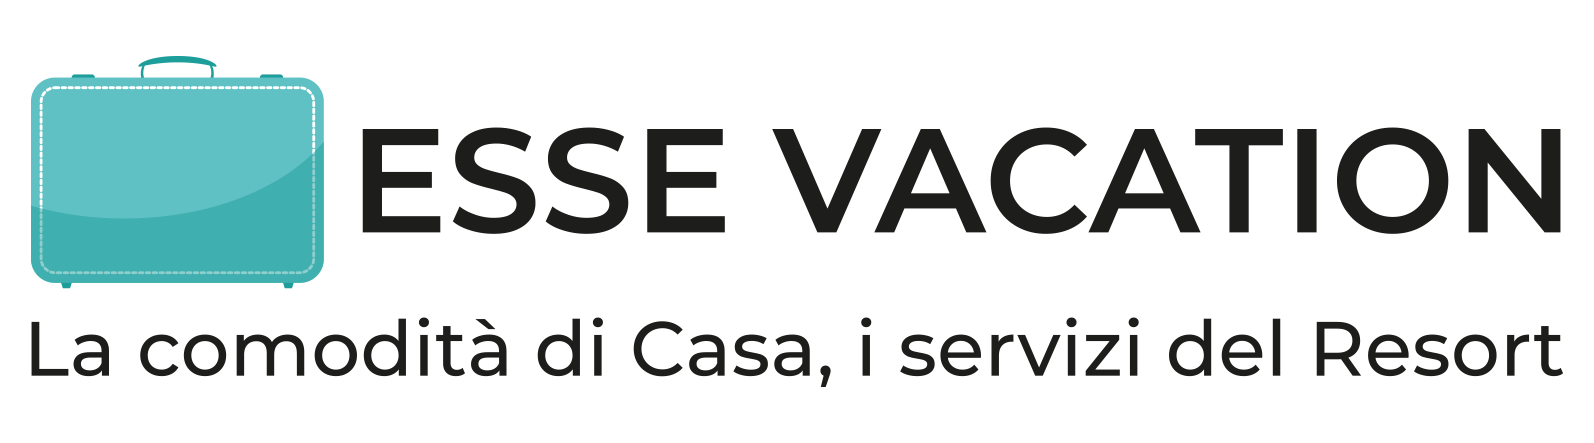 Essevacation